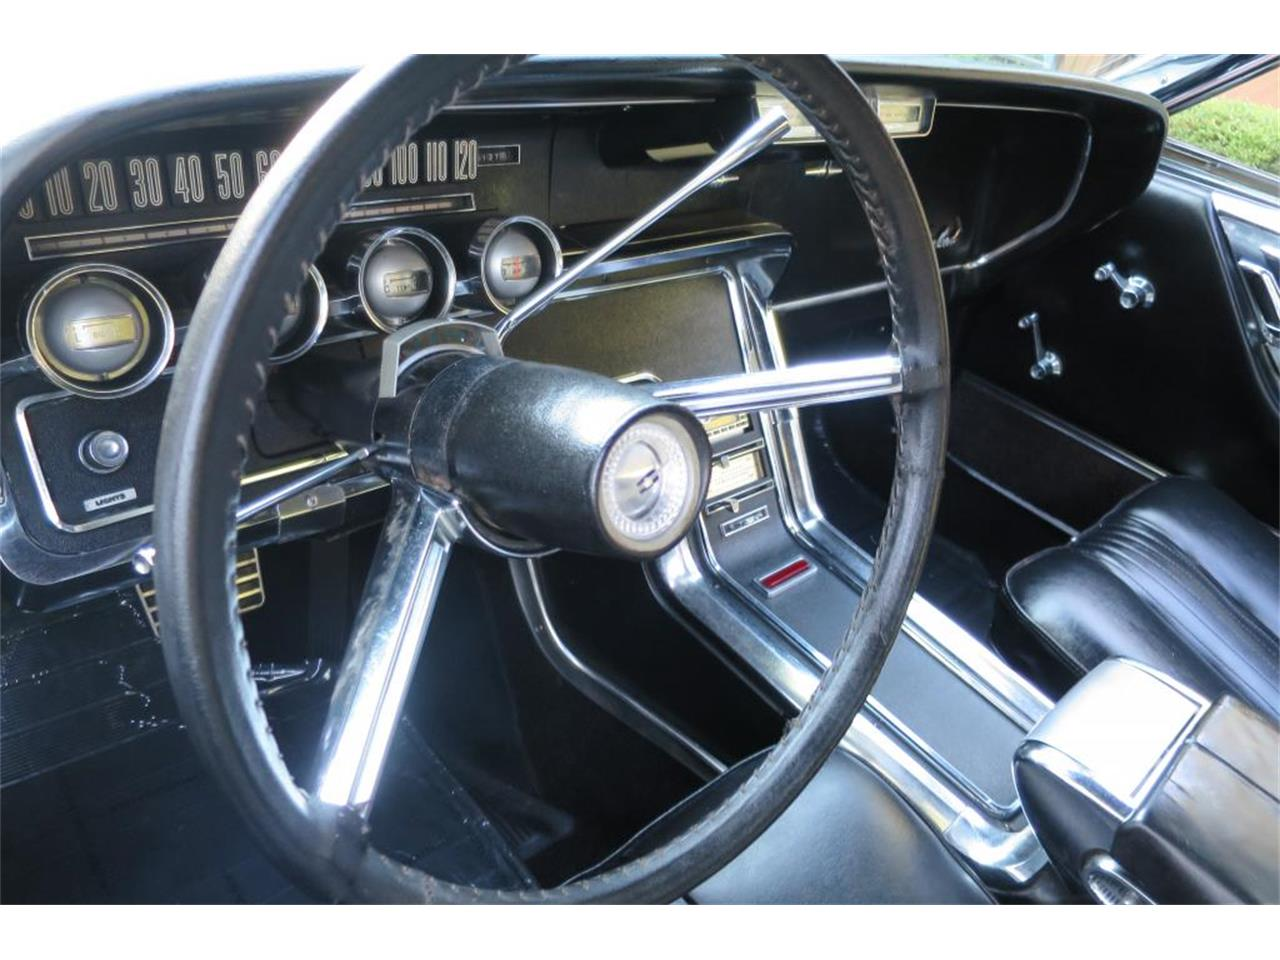 Large Picture of Classic 1964 Ford Thunderbird located in Milford City Connecticut Auction Vehicle Offered by Napoli Classics - LHHL